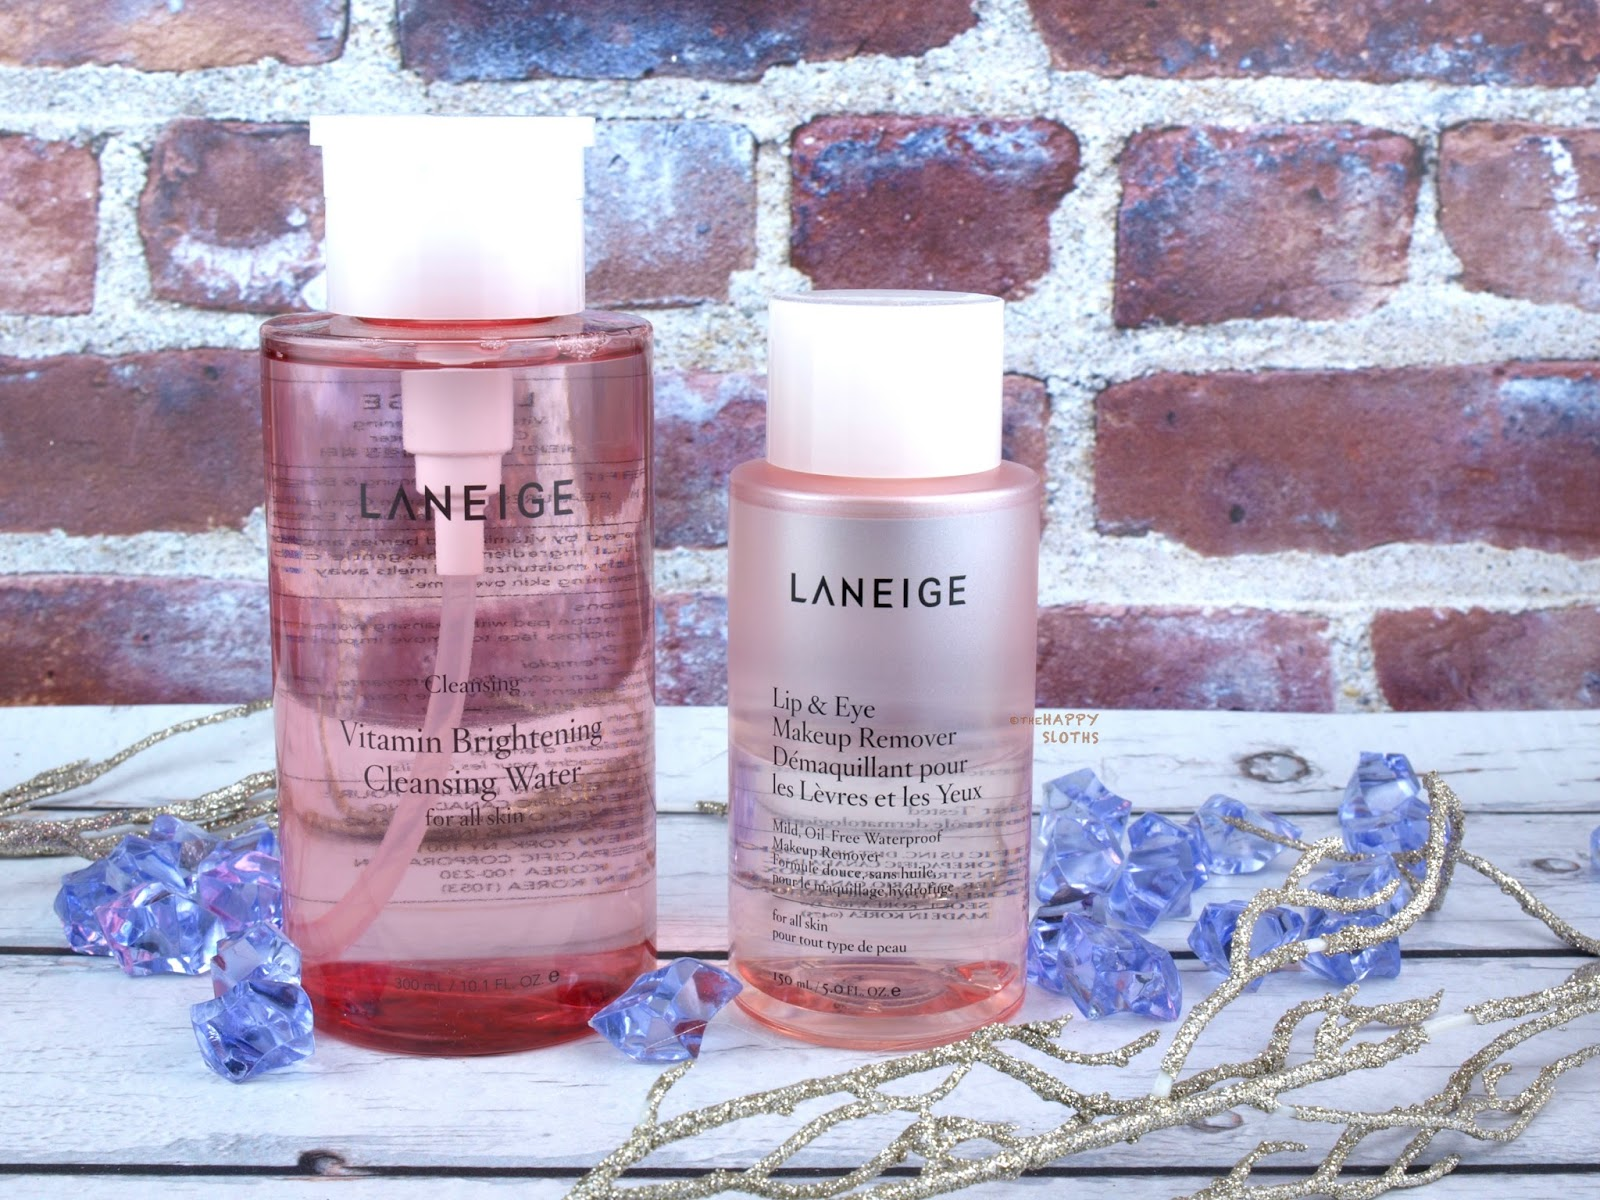 Taking Off The Day With Laneige Lip Eye Makeup Remover And Vitamin Brightening Cleansing Water Review The Happy Sloths Beauty Makeup And Skincare Blog With Reviews And Swatches